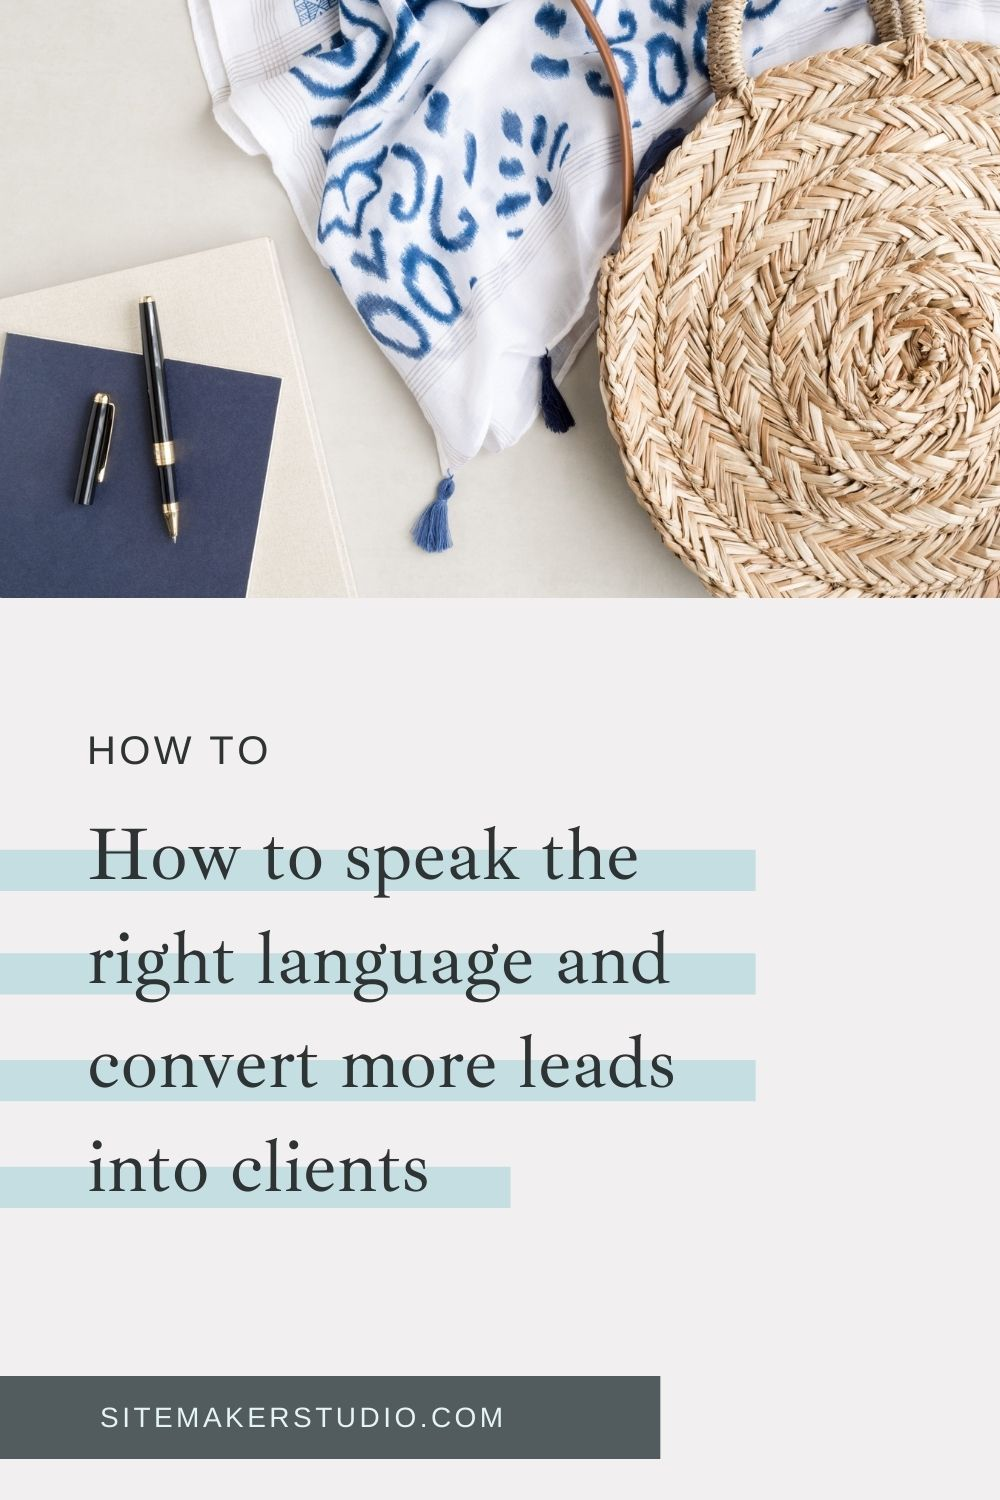 converting interior design home industry leads into clients with a custom website design converting interior design home industry leads into clients with a custom website design converting interior design home industry leads into clients with a custom website design